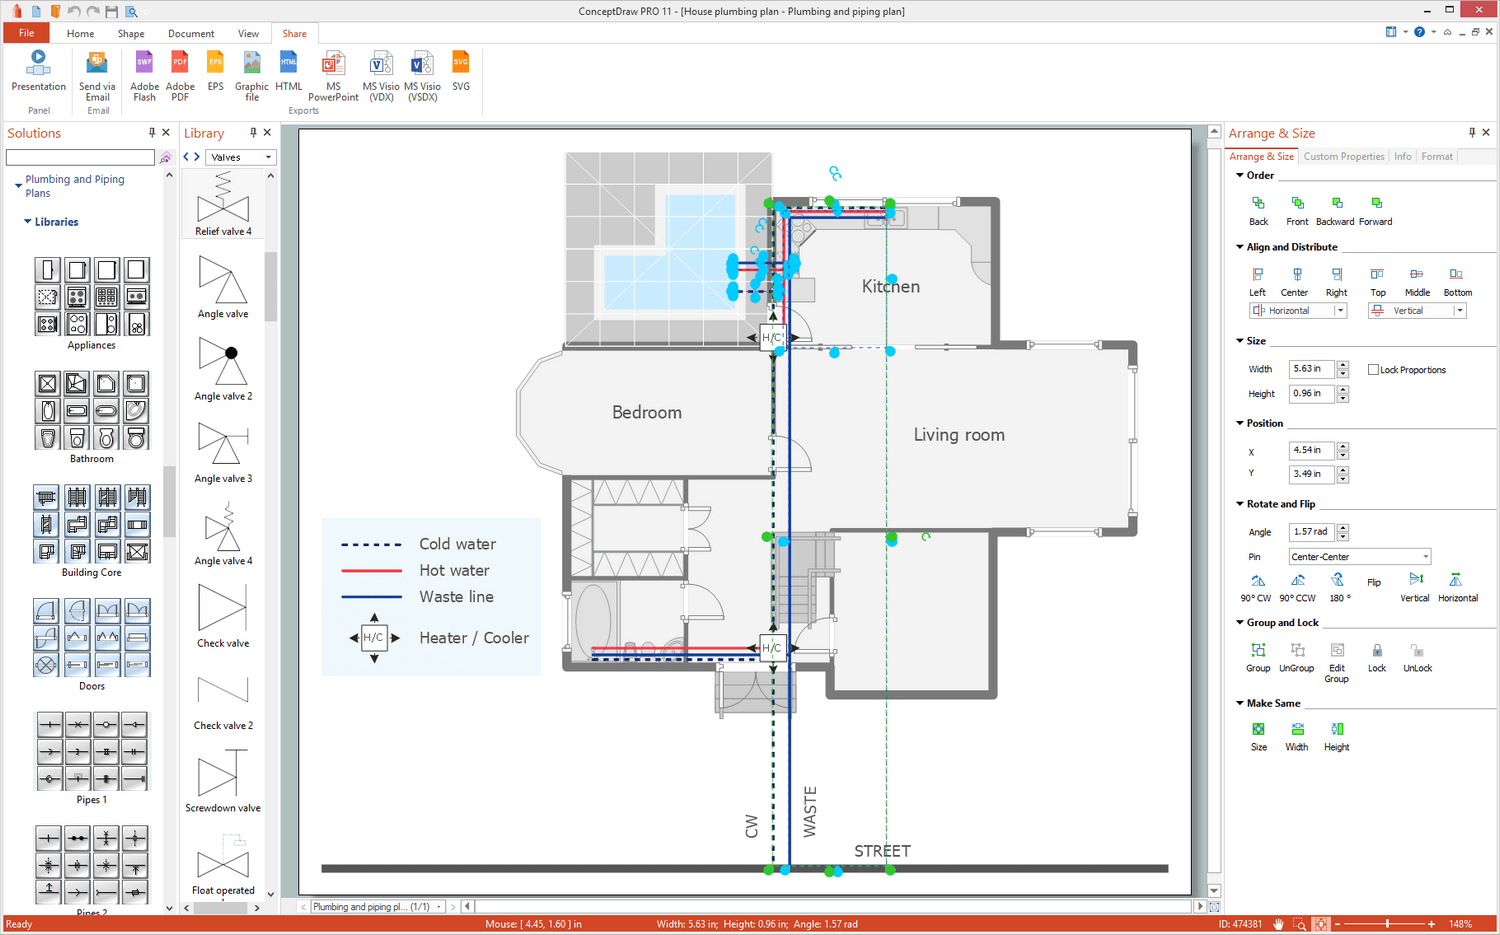 hight resolution of plumbing and piping plans solution for microsoft windows